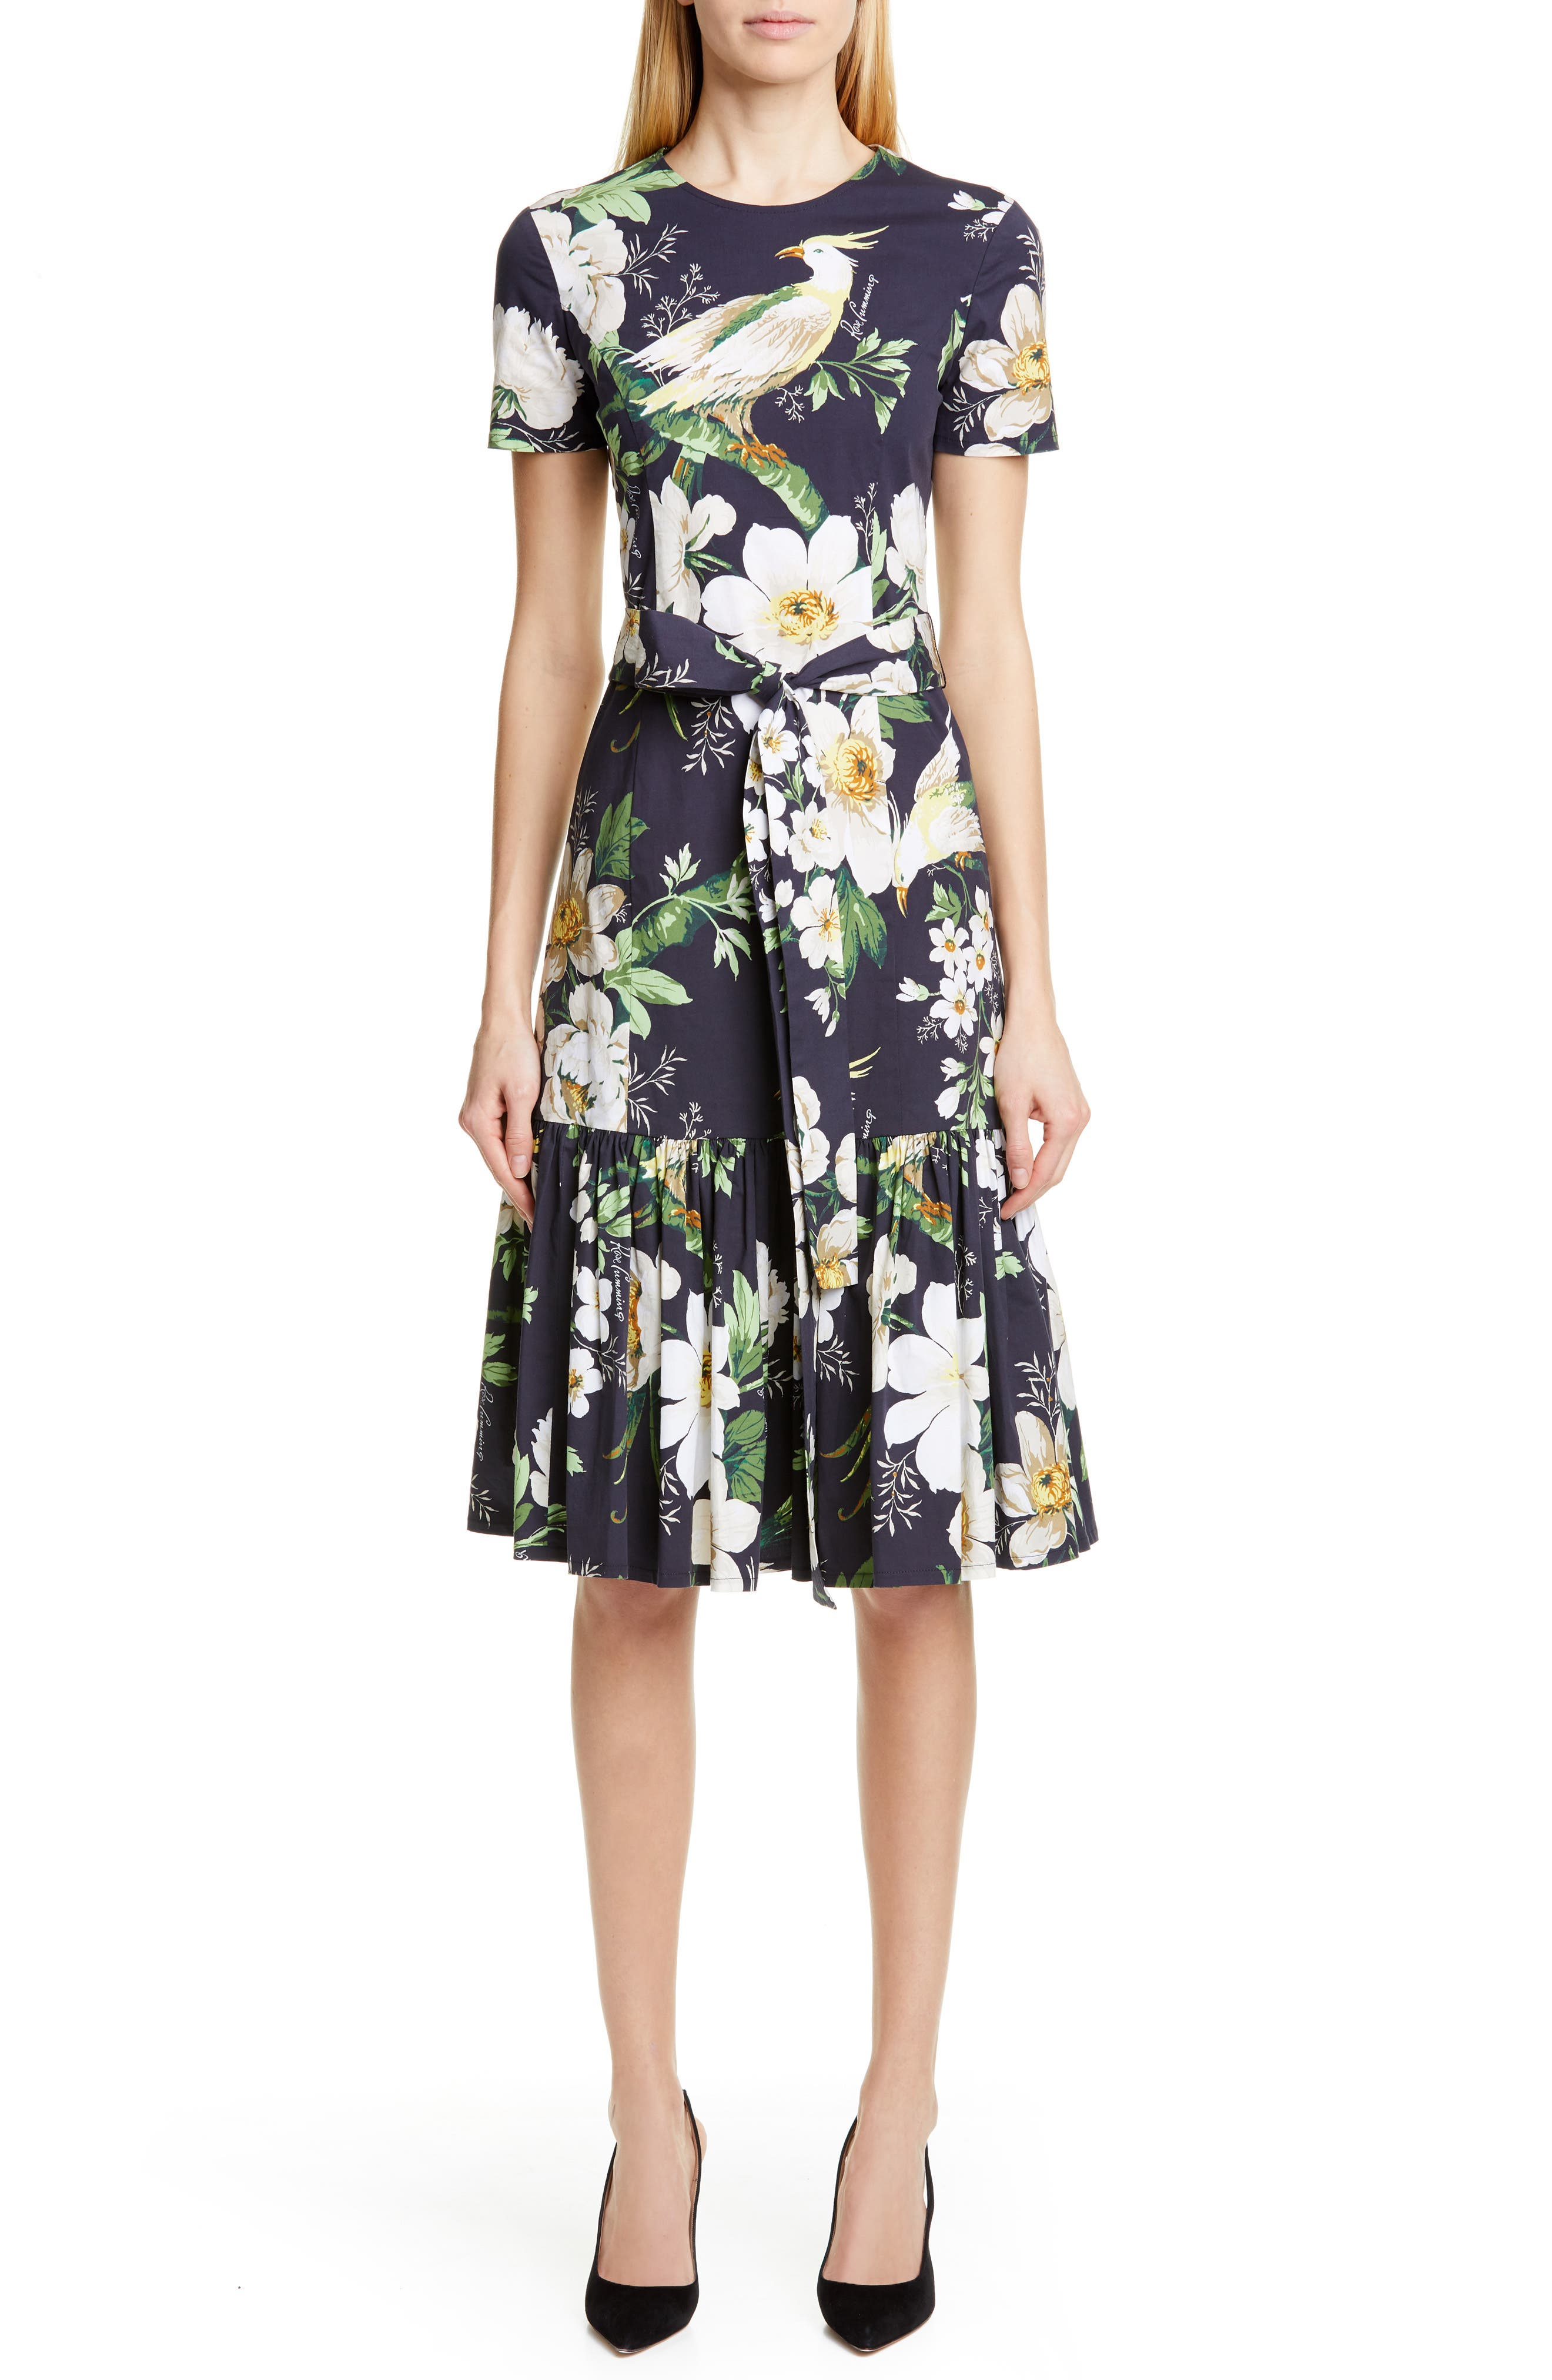 Carolina Herrera Floral Print Stretch Cotton Dress, Black